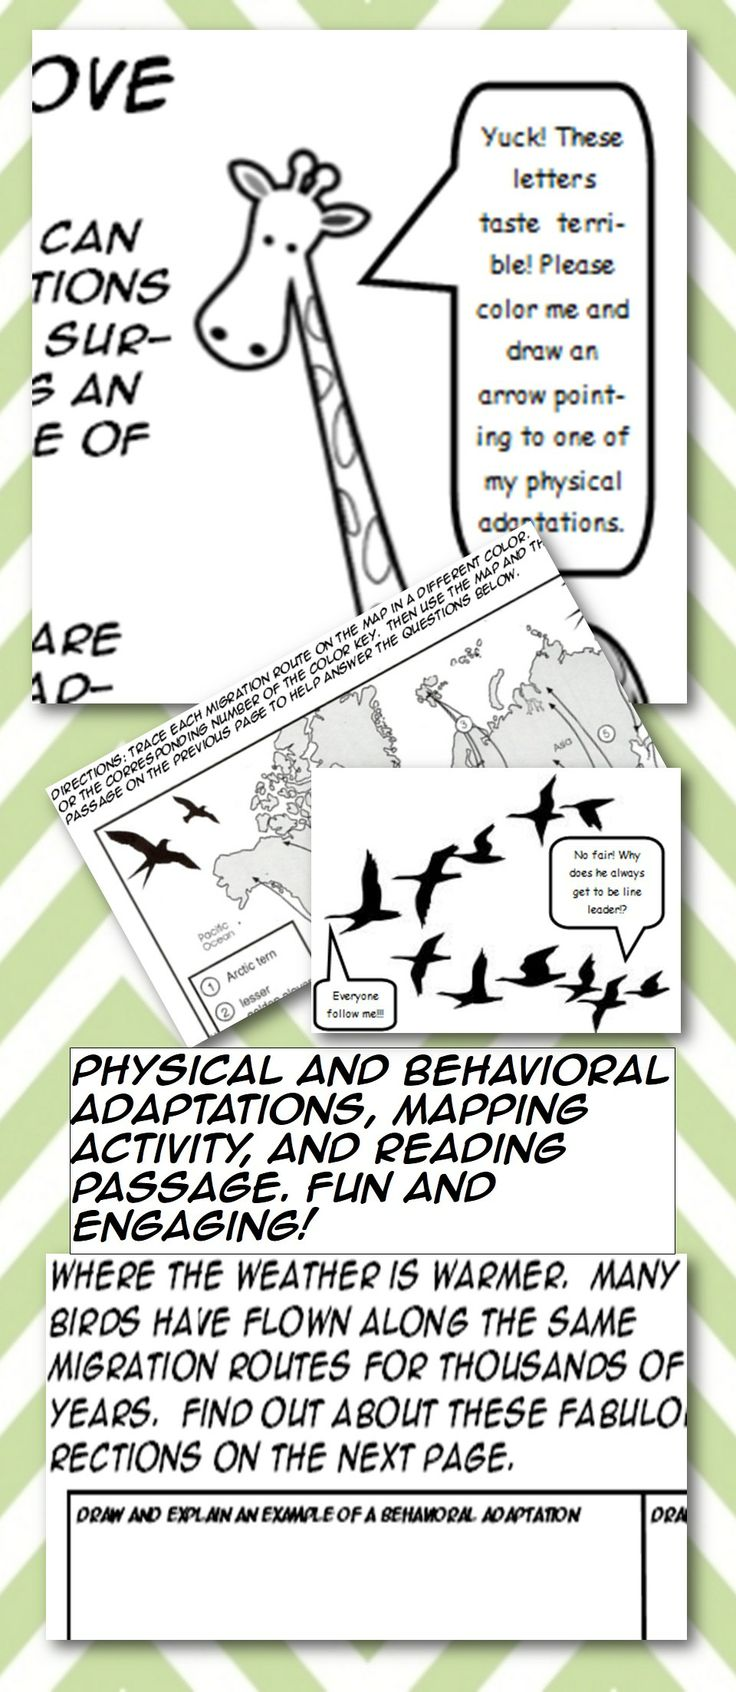 Great Adaptations activity! Fun and engaging! Includes behavioral and physical adaptations. Engages students with coloring, map interpretation, and reading. Funny, comic style design further enhances engagement. Great classwork, homework, or substitute activity. Designed for middle grade students, most appropriate for 4th through 7th grade students.